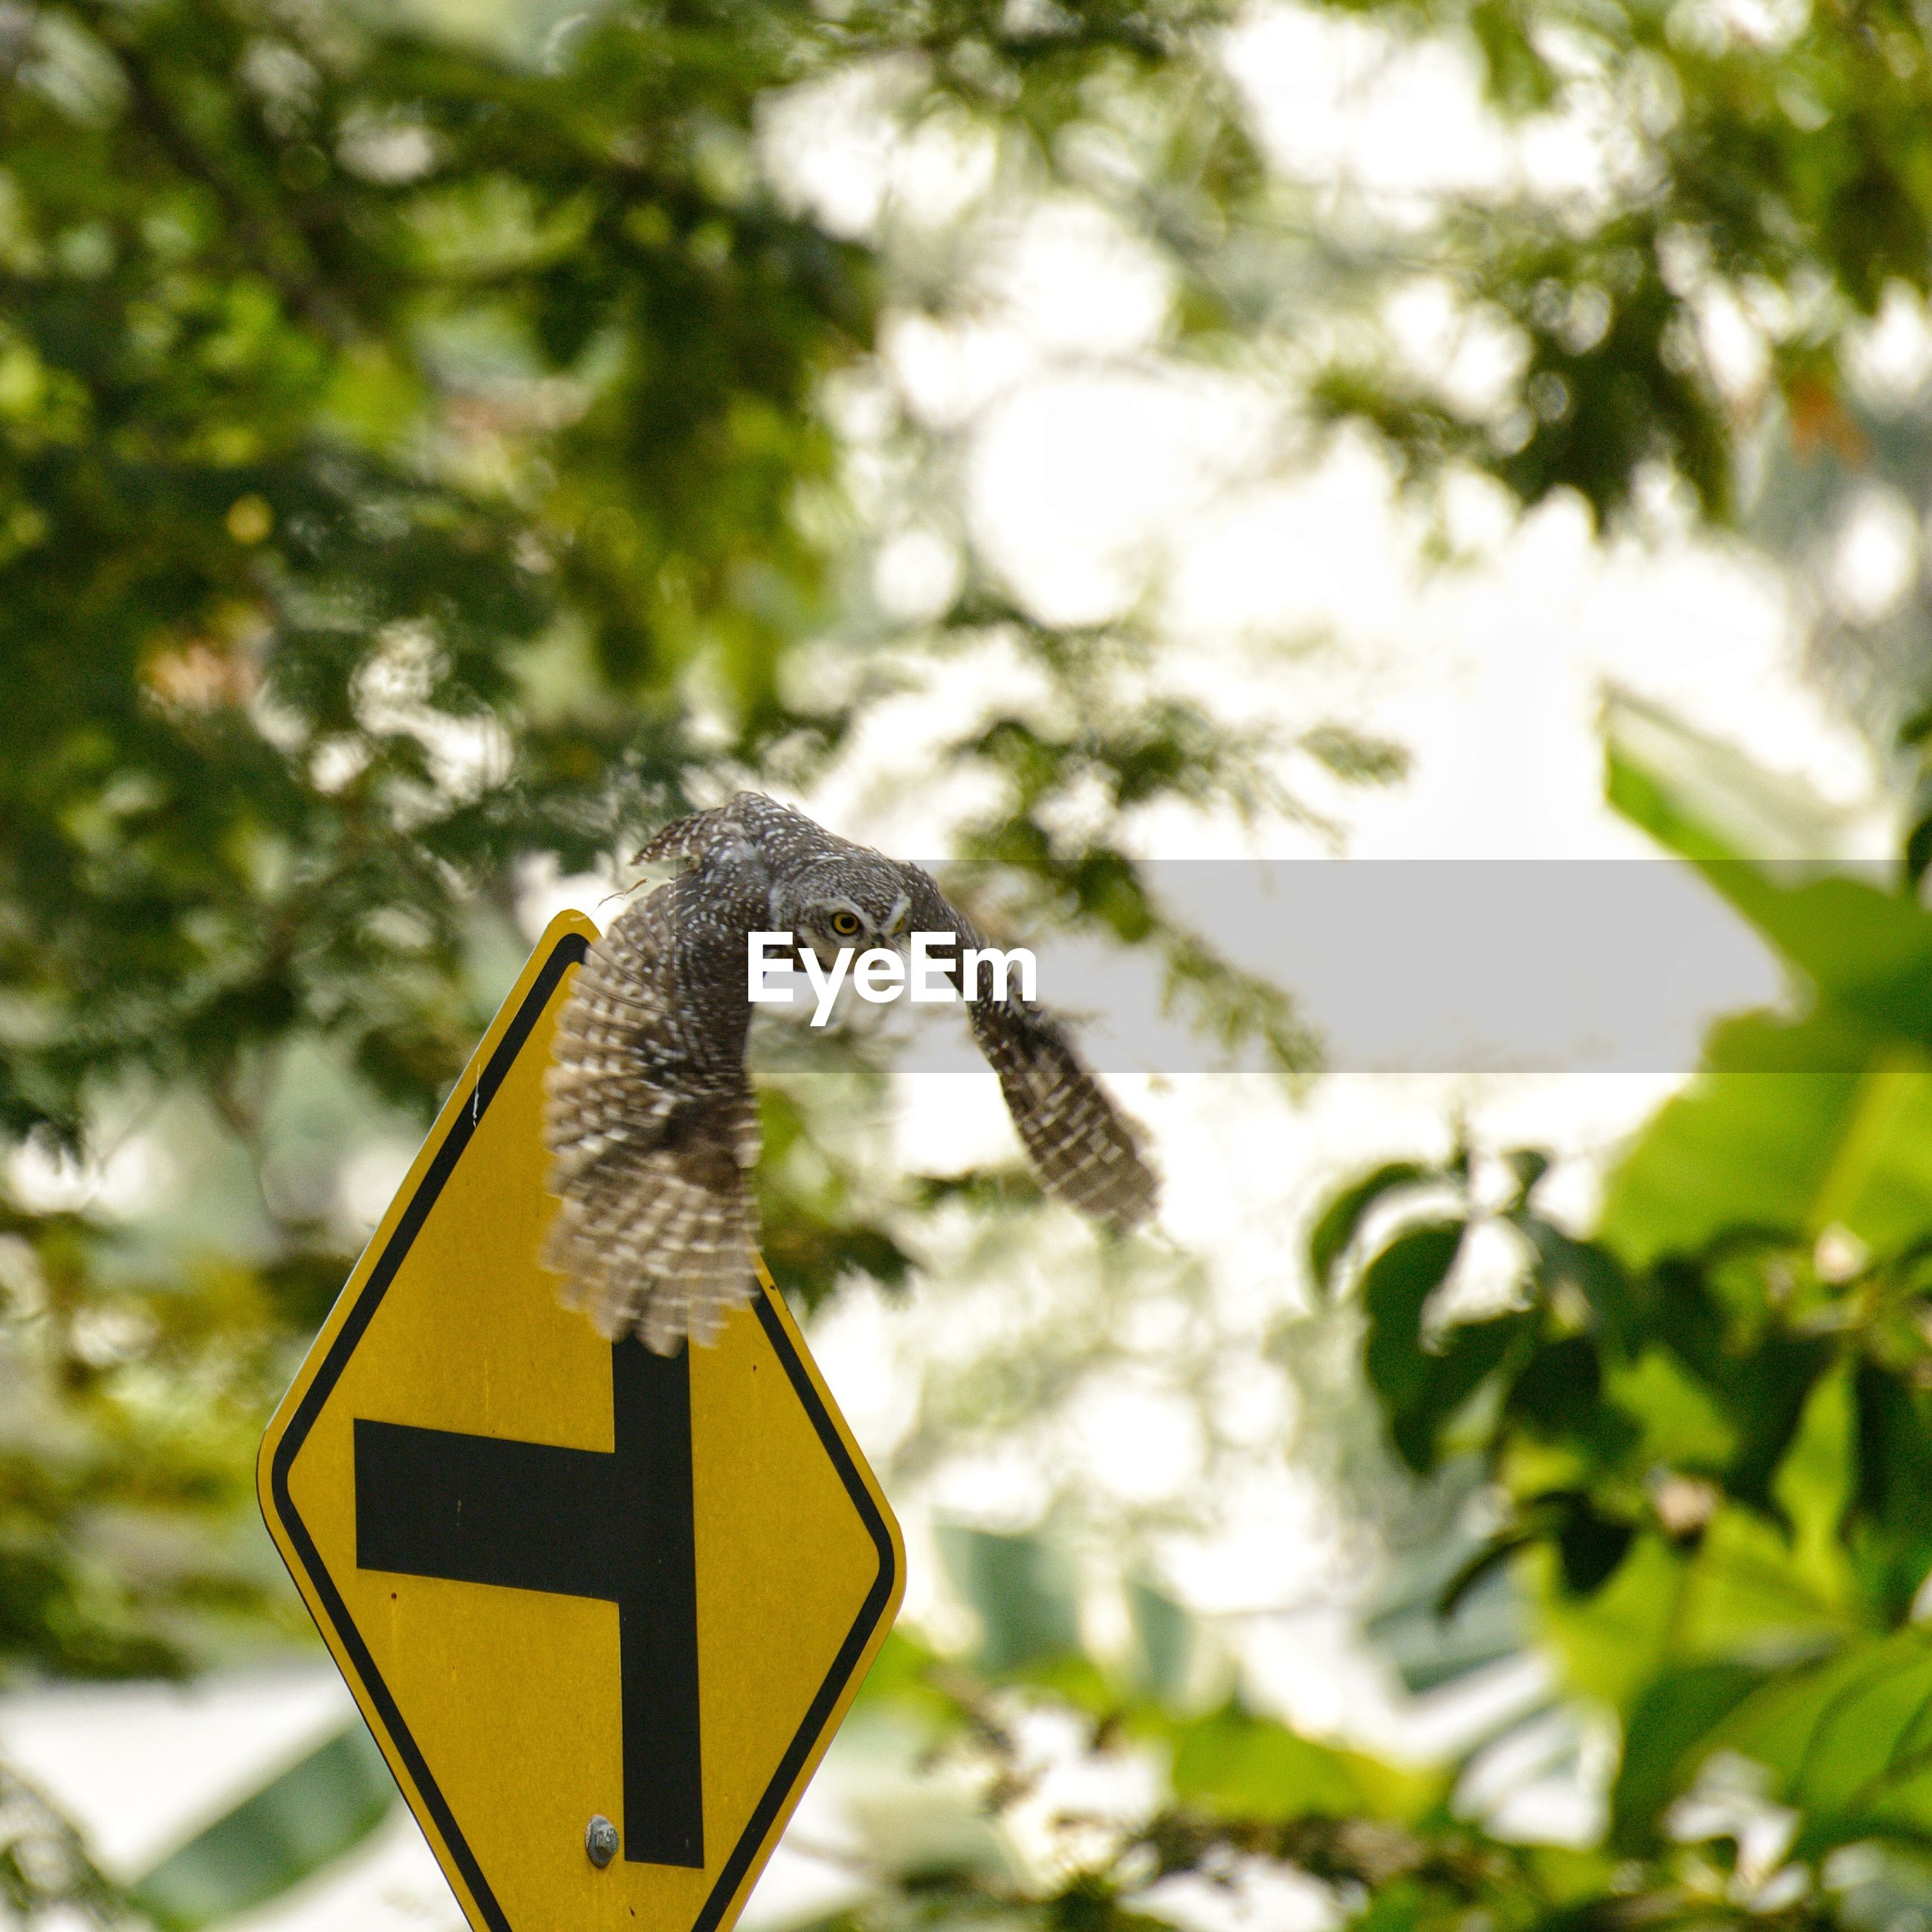 The spotted owlet in nature, amidst large trees in the daytime, during this activity